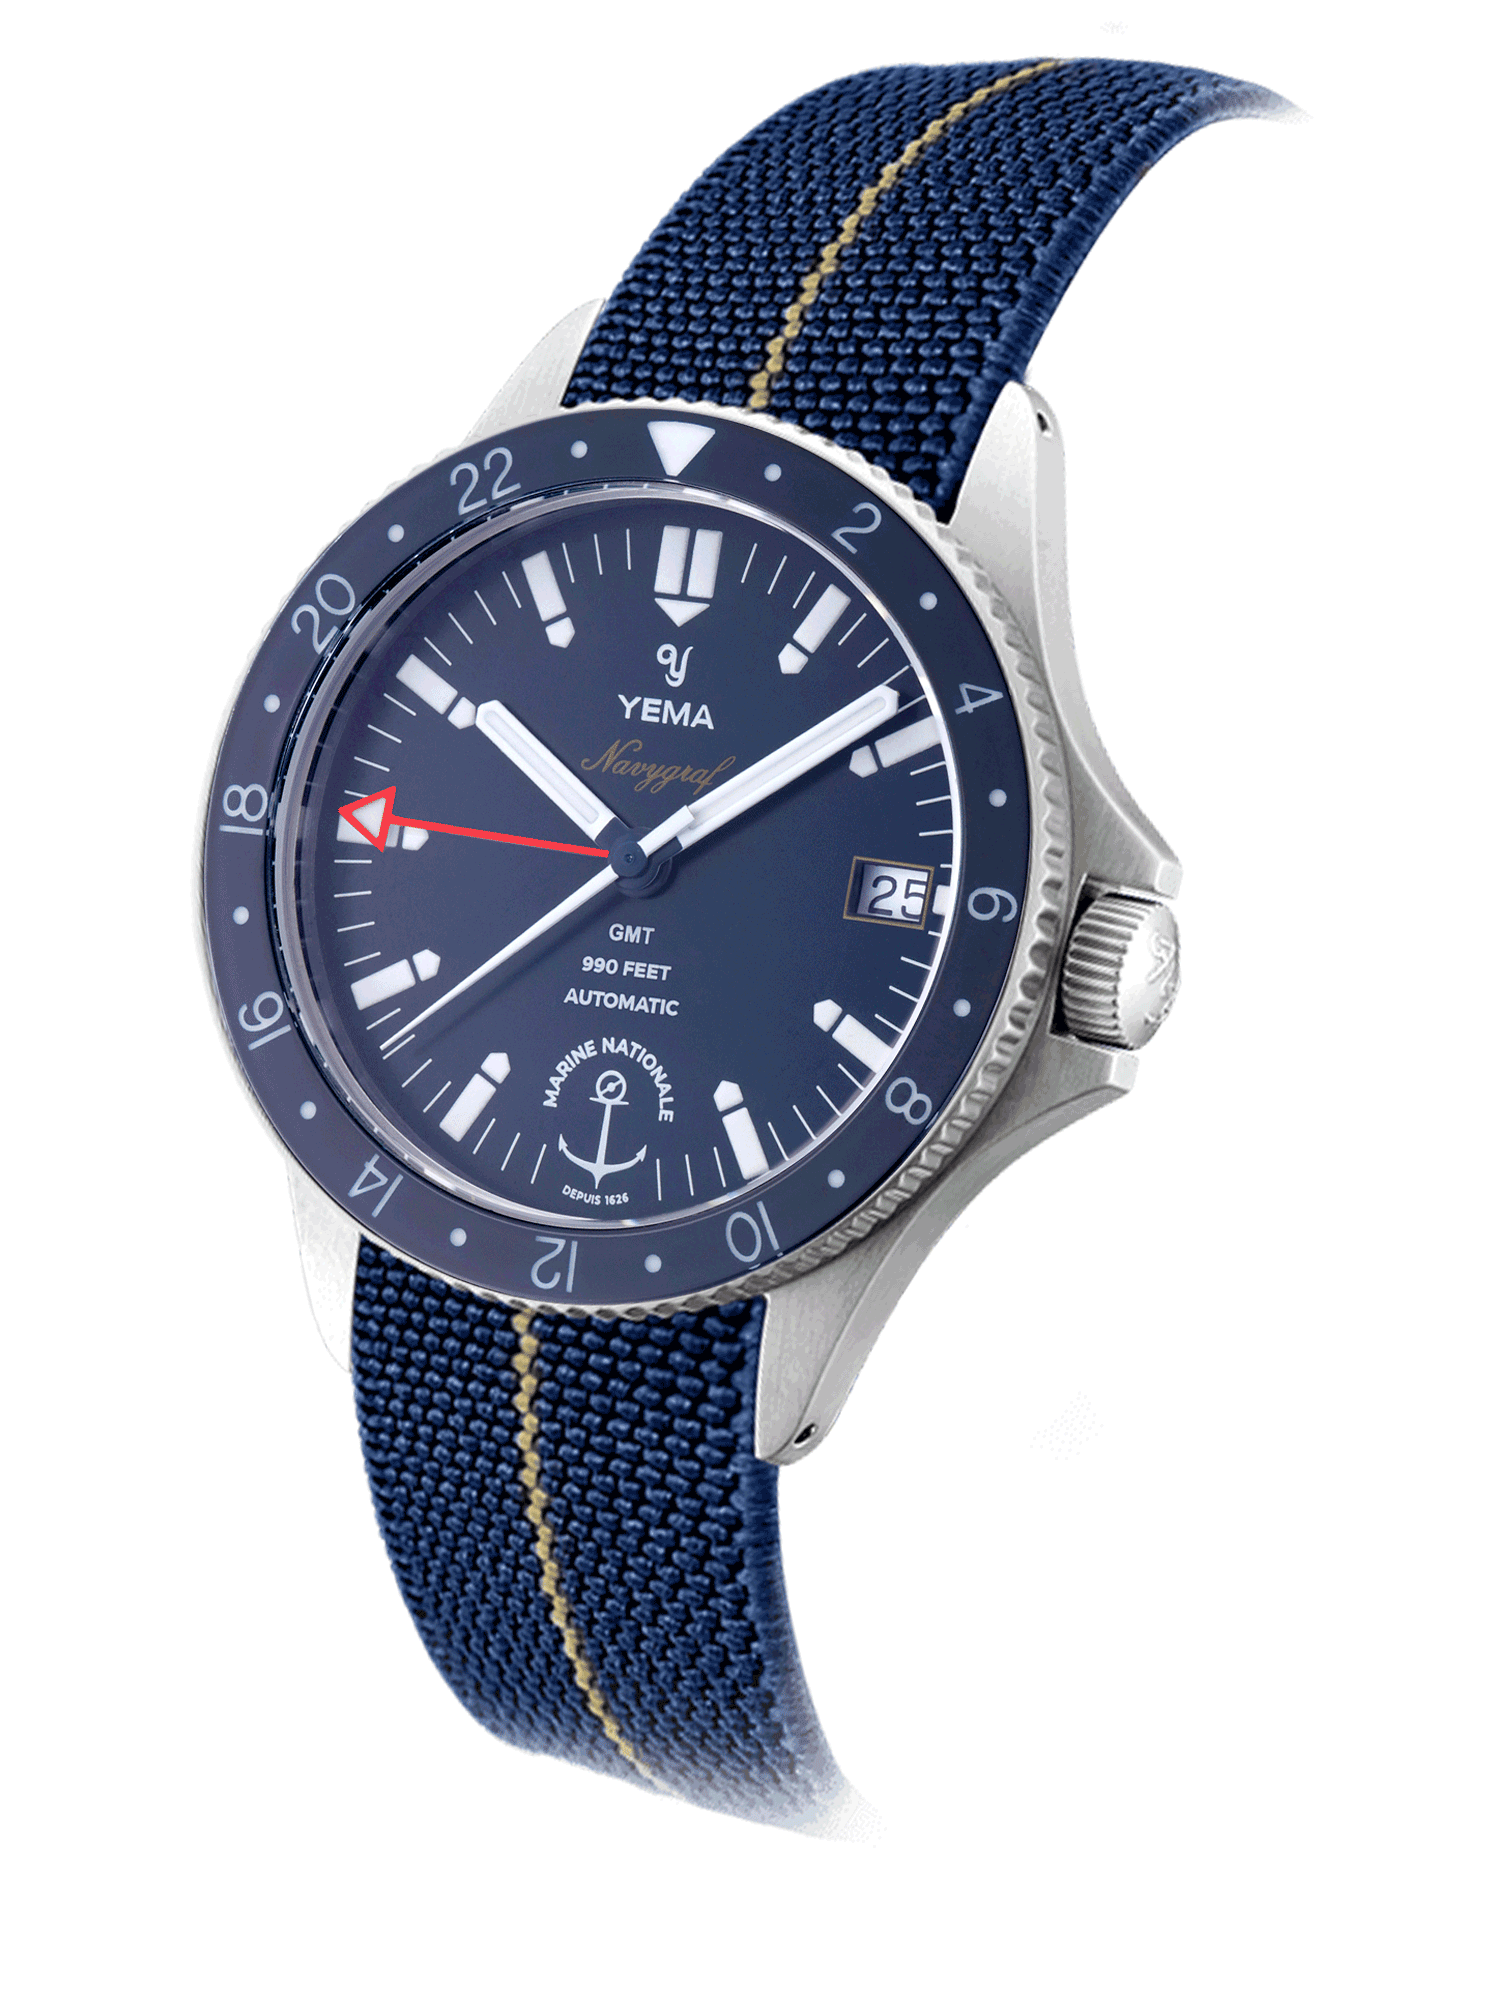 YEMA Navygraf Marine nationale GMT Limited Edition